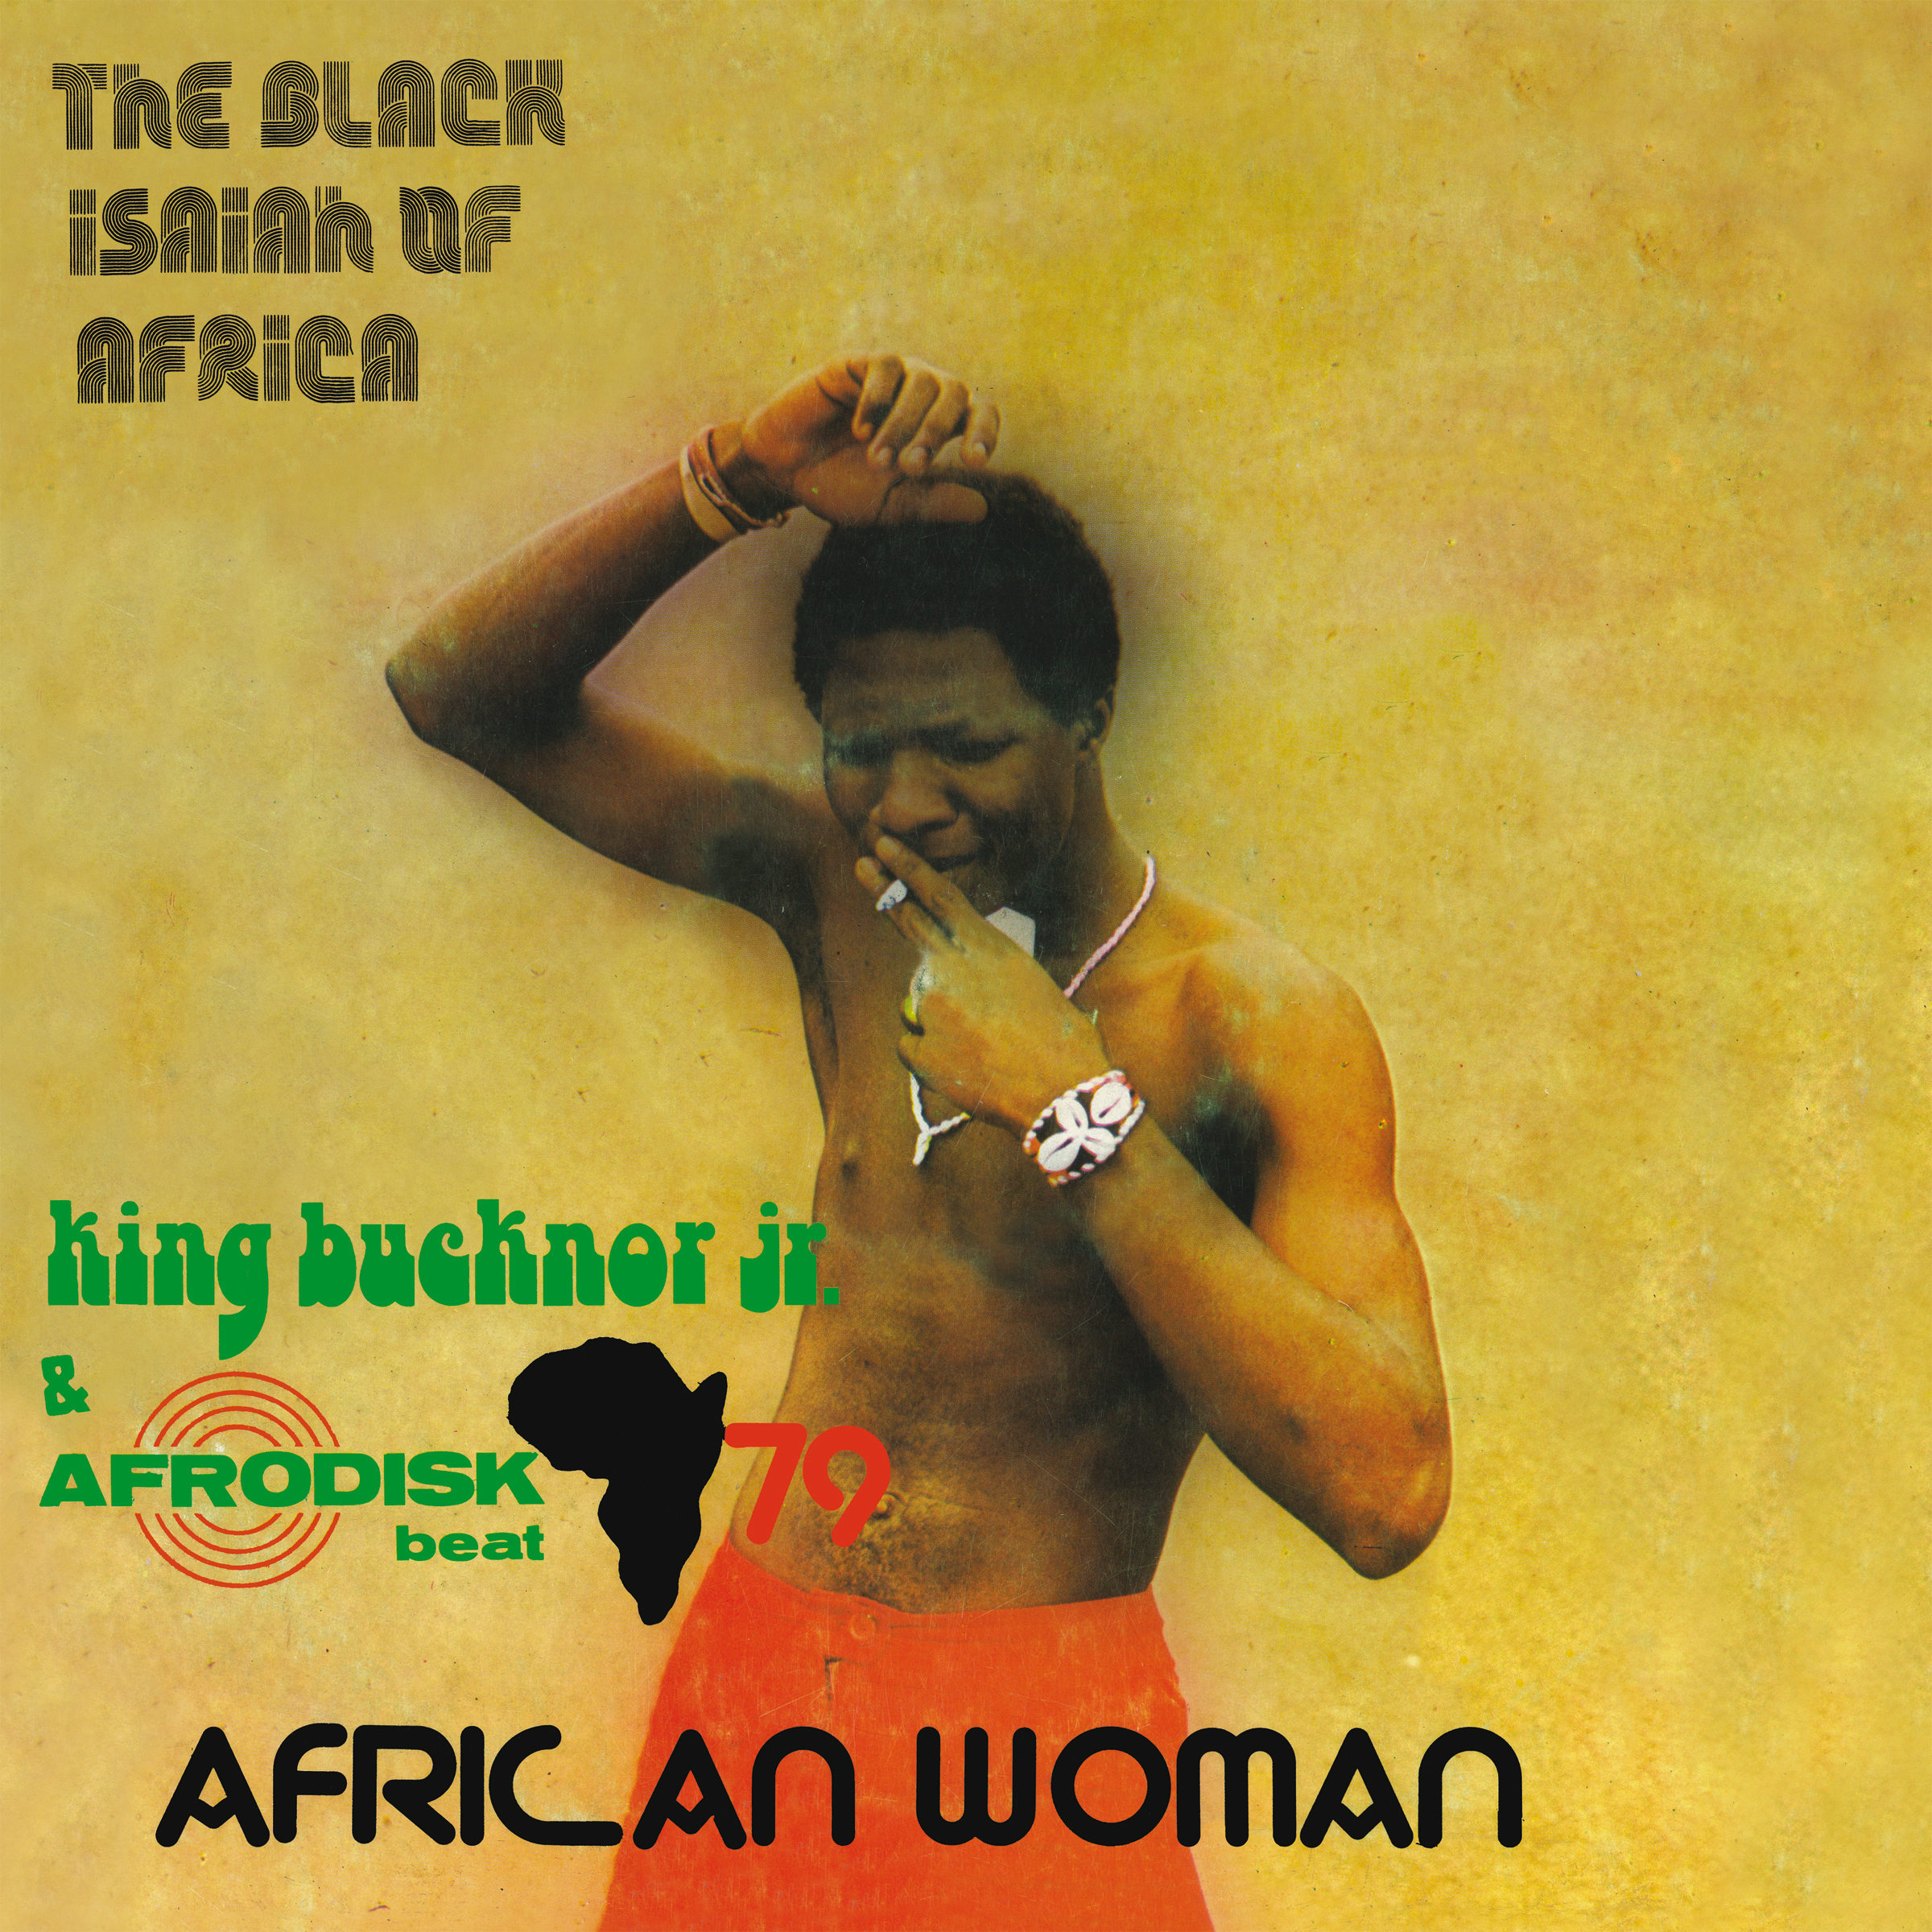 King Bucknor Jr African woman